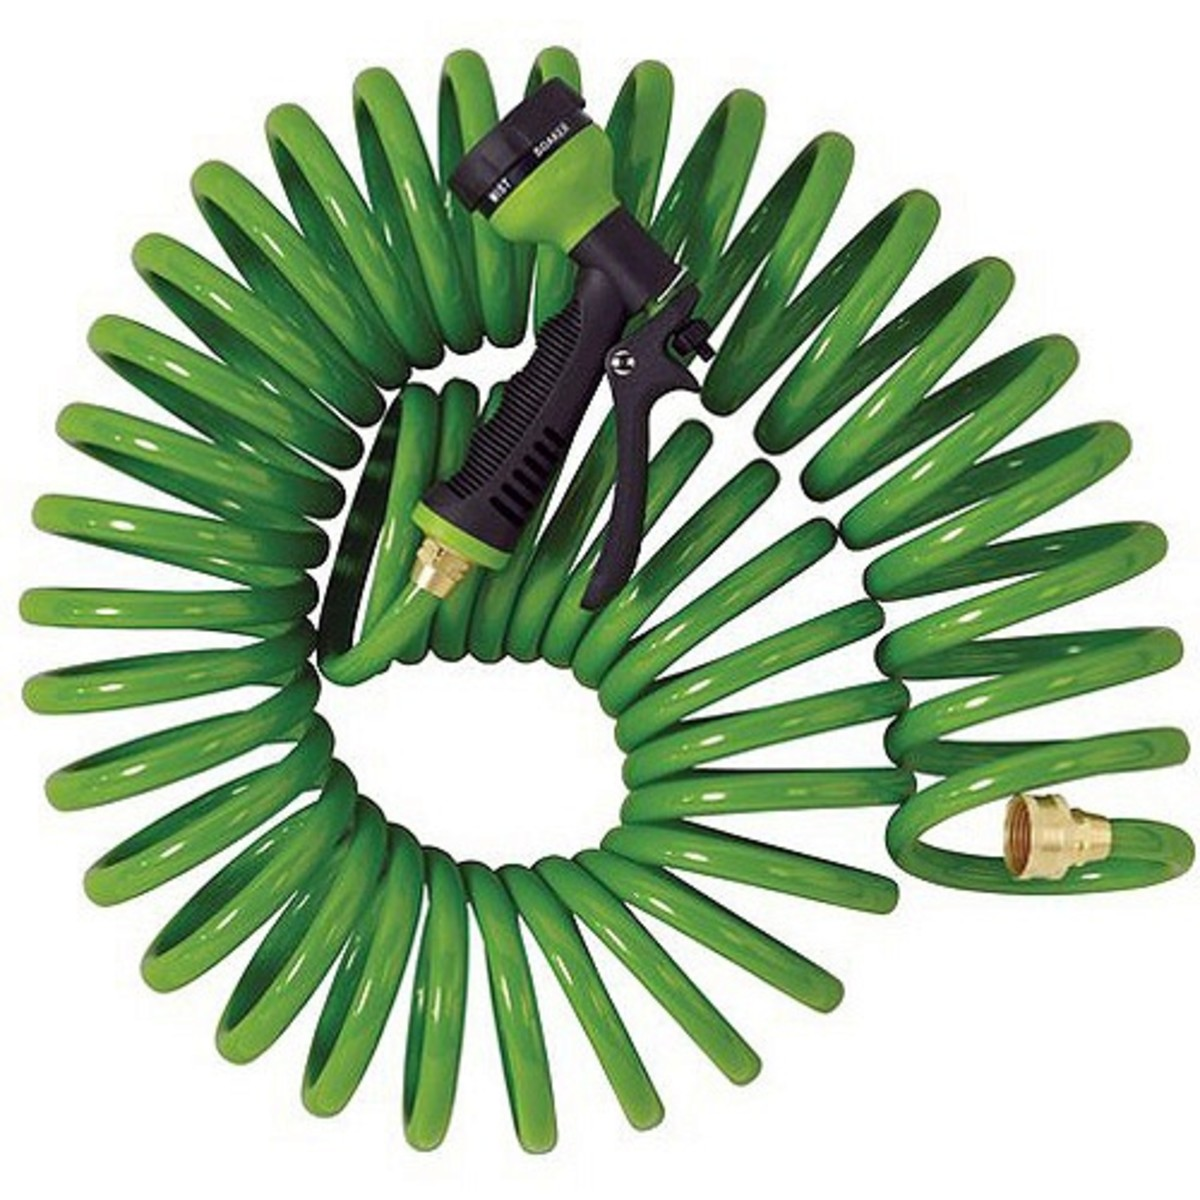 Orbit 50-foot hose with Pistol Nozzle